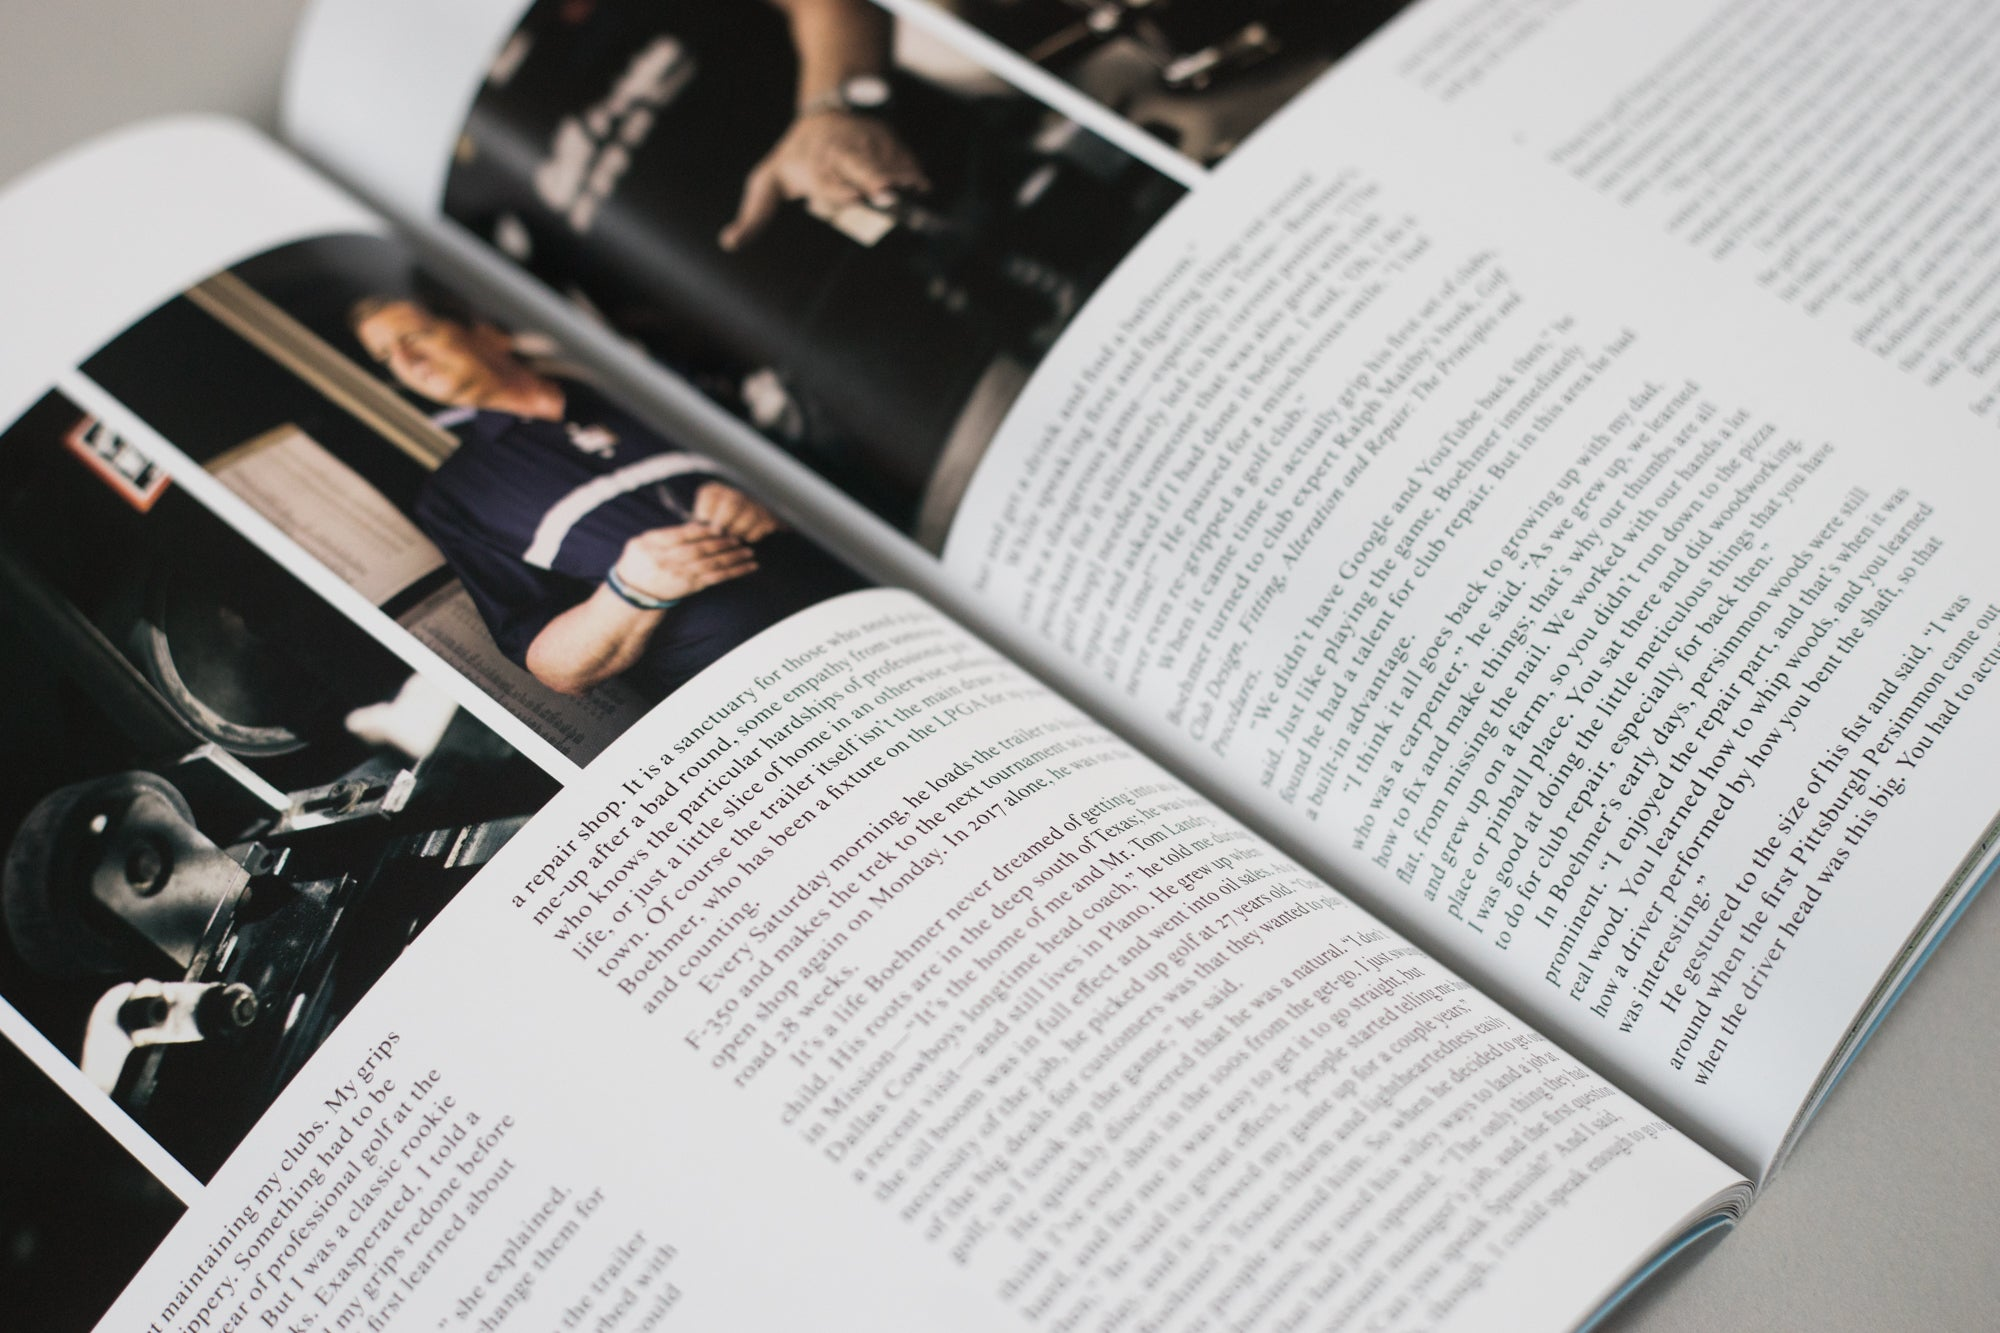 The Golfer's Journal Issue 6 double page article spread